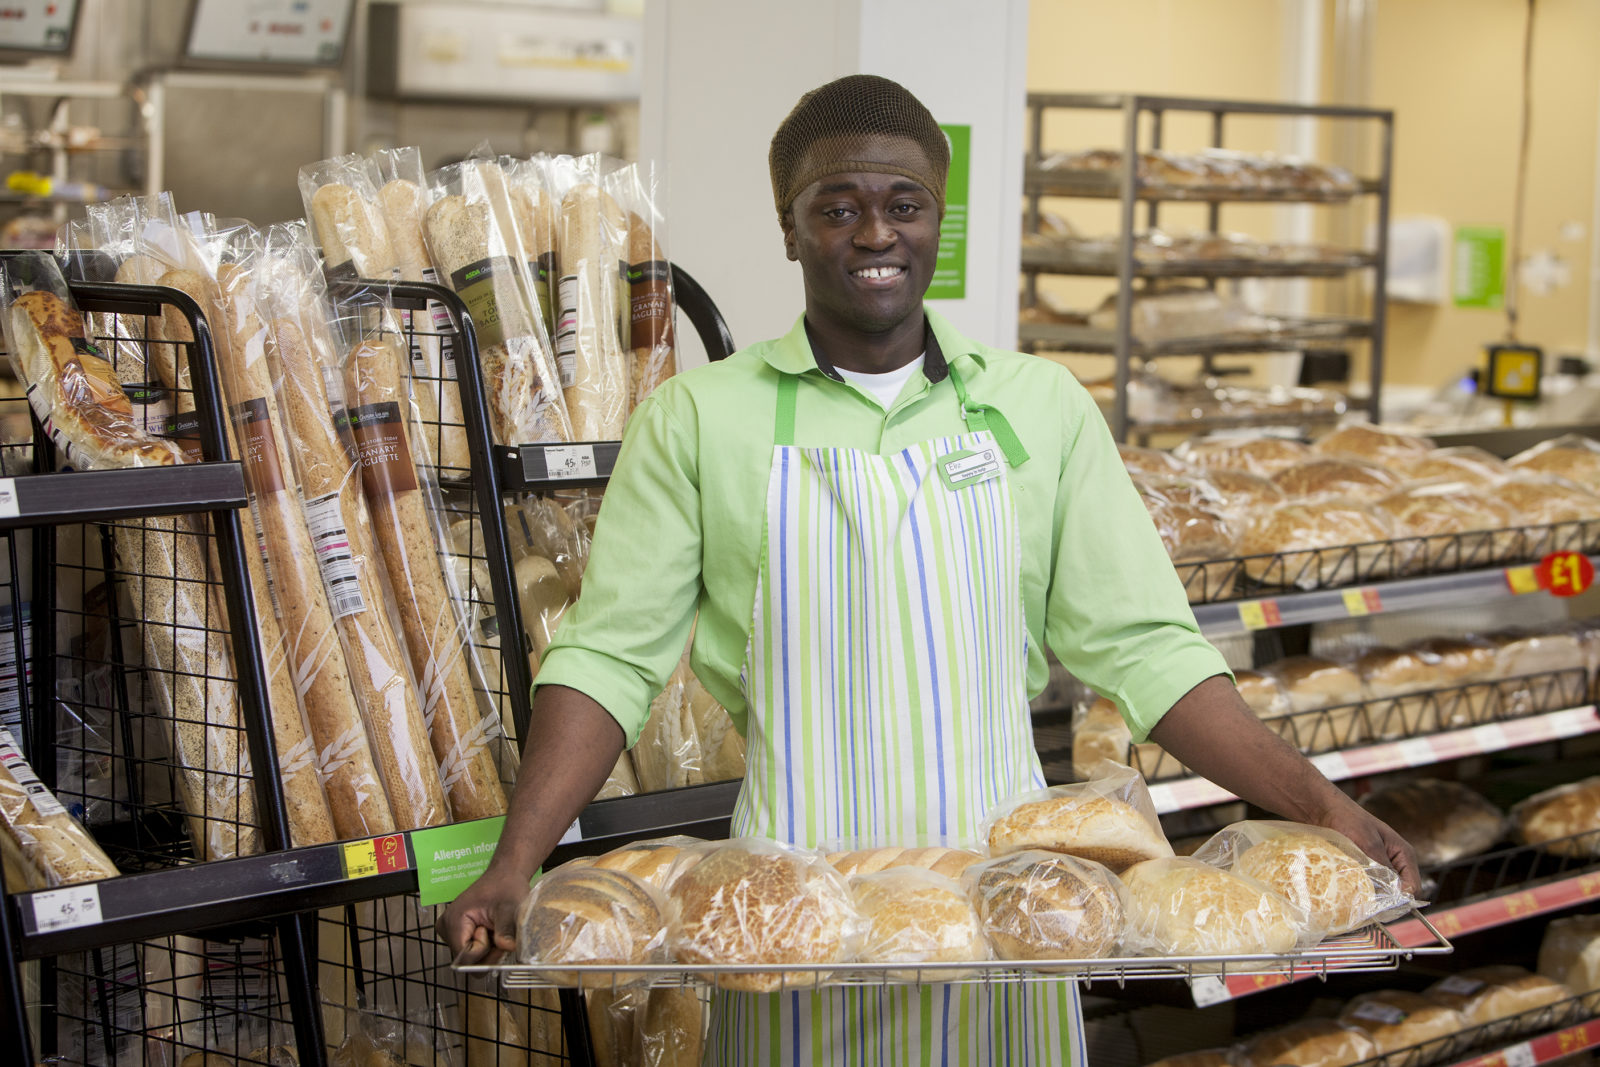 Asda to scrap in-store bakery, putting 1200 jobs at risk